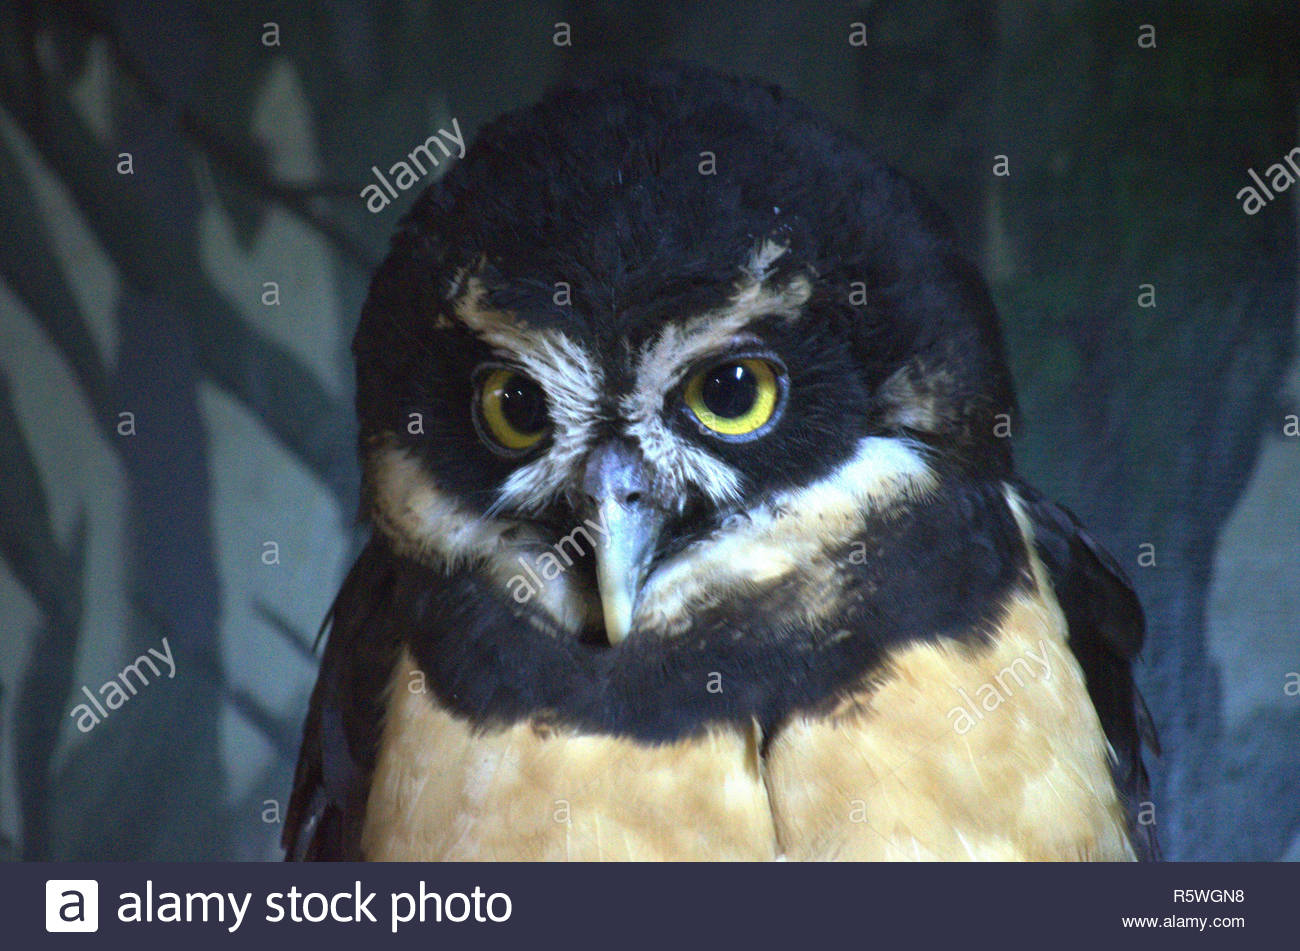 Spectacle Owl at zoo - Stock Image